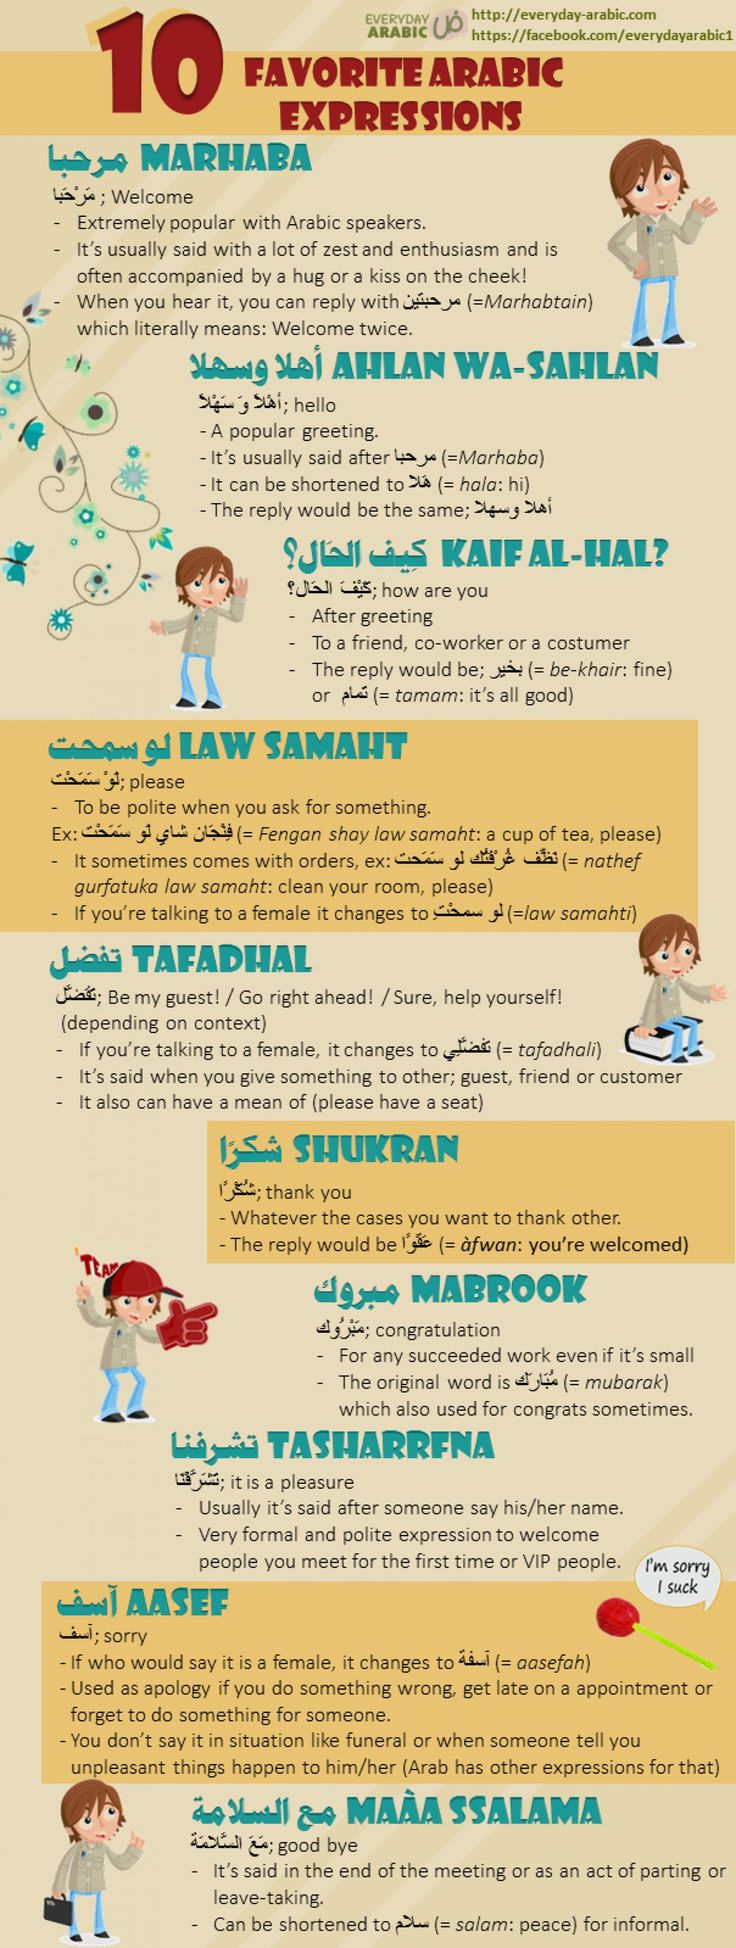 10 Favorite Arabic Expressions #arabic #language #learning